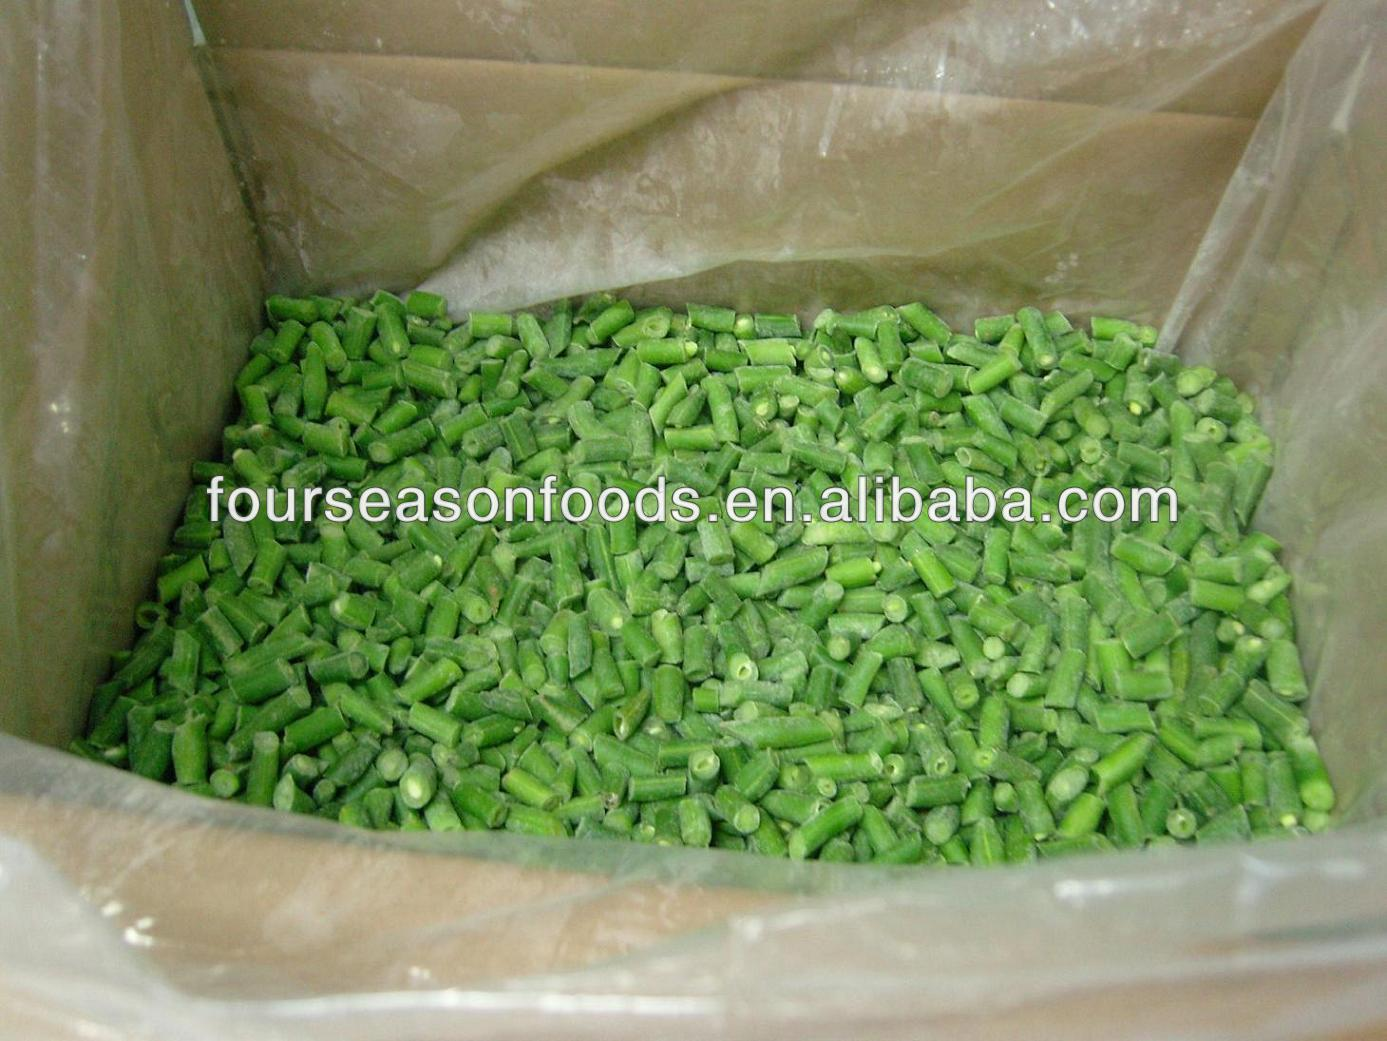 wholesale A Grade frozen/IQF fresh green beans in bundle /cut/whole in 2016 in competitive price ,chinese frozen vegetables